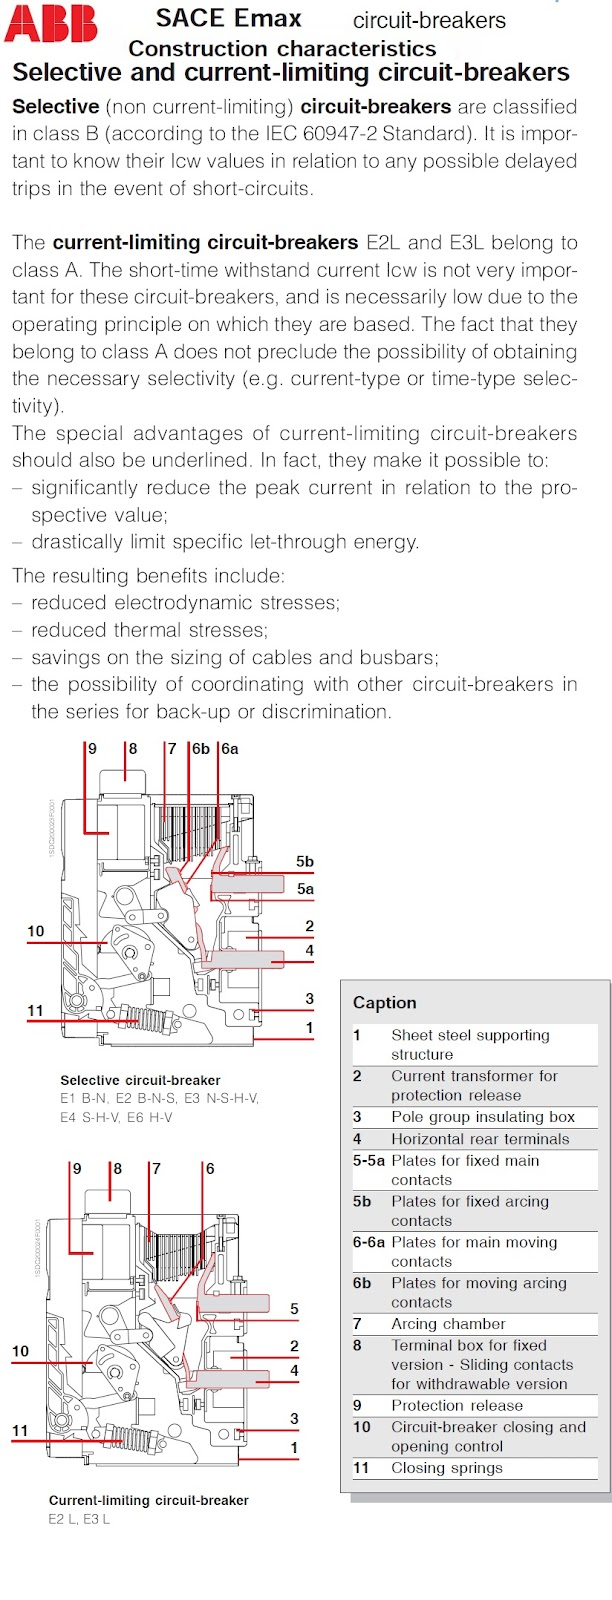 hight resolution of abb sace emax circuit breakers selective and current limiting circuit breakers